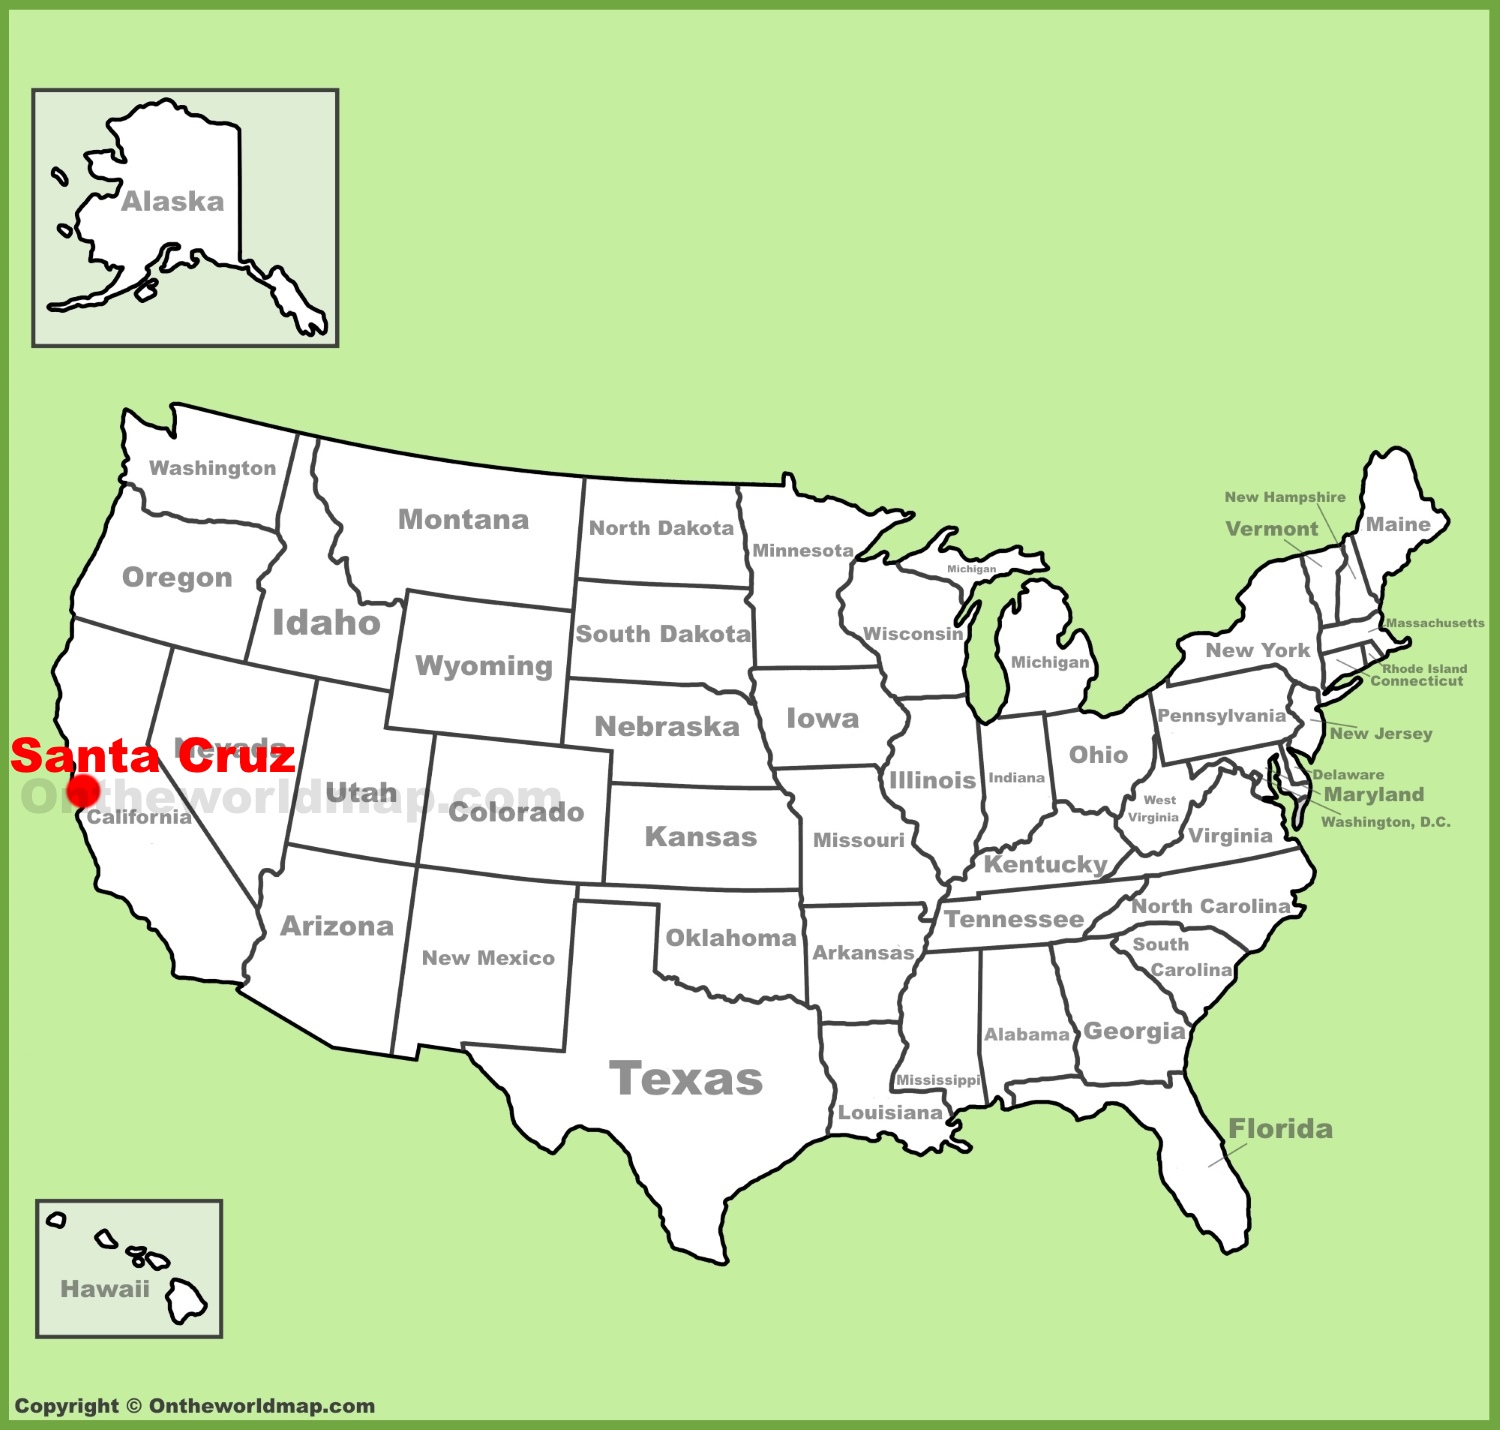 Santa Cruz location on the US Map